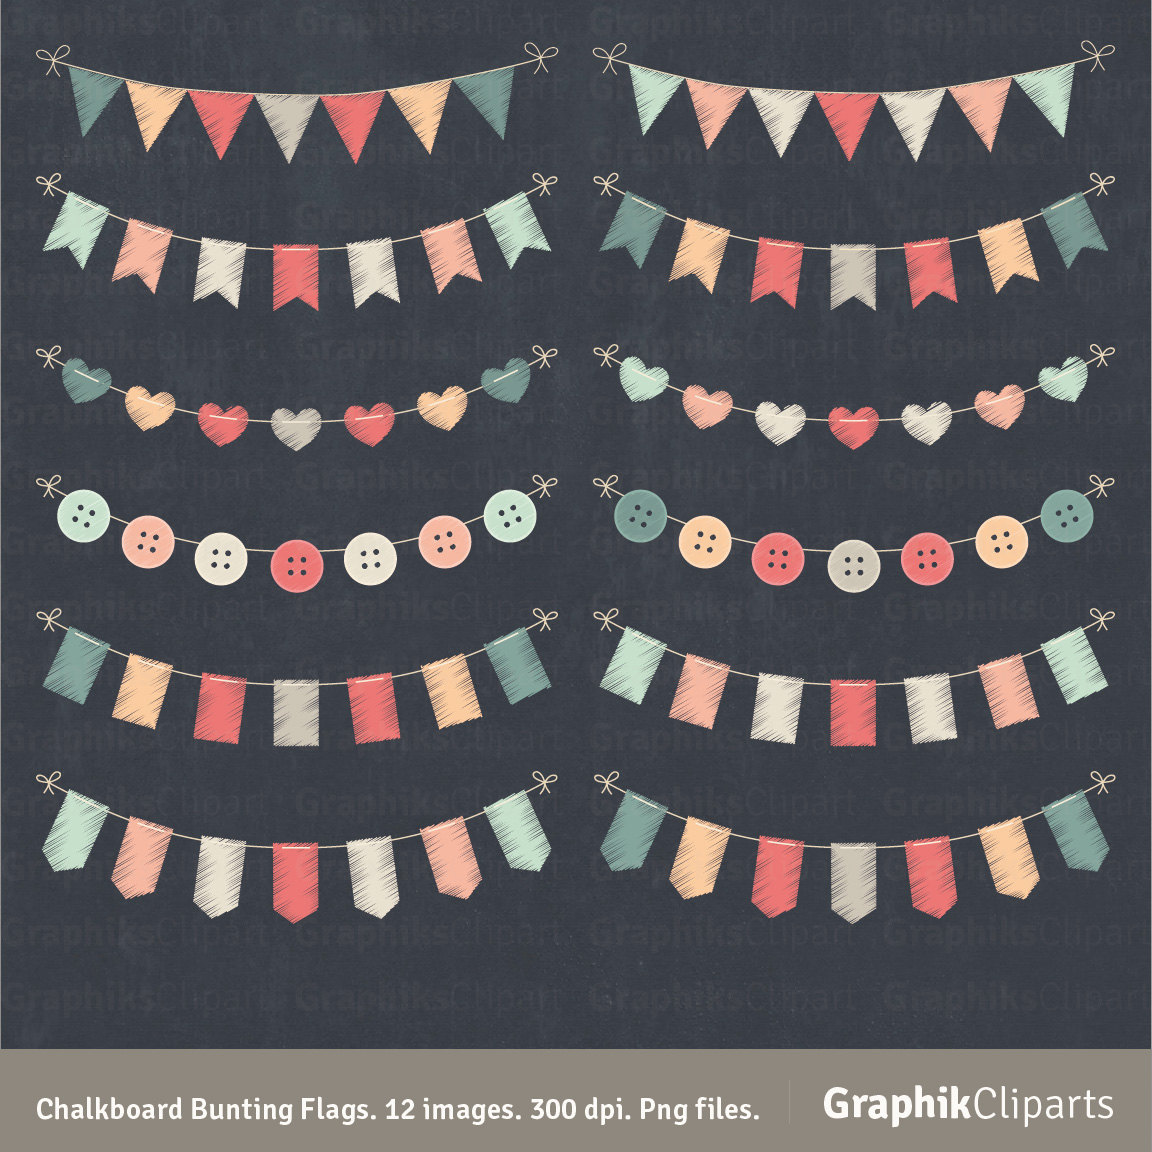 Chalkboard Bunting Flags Clipart.